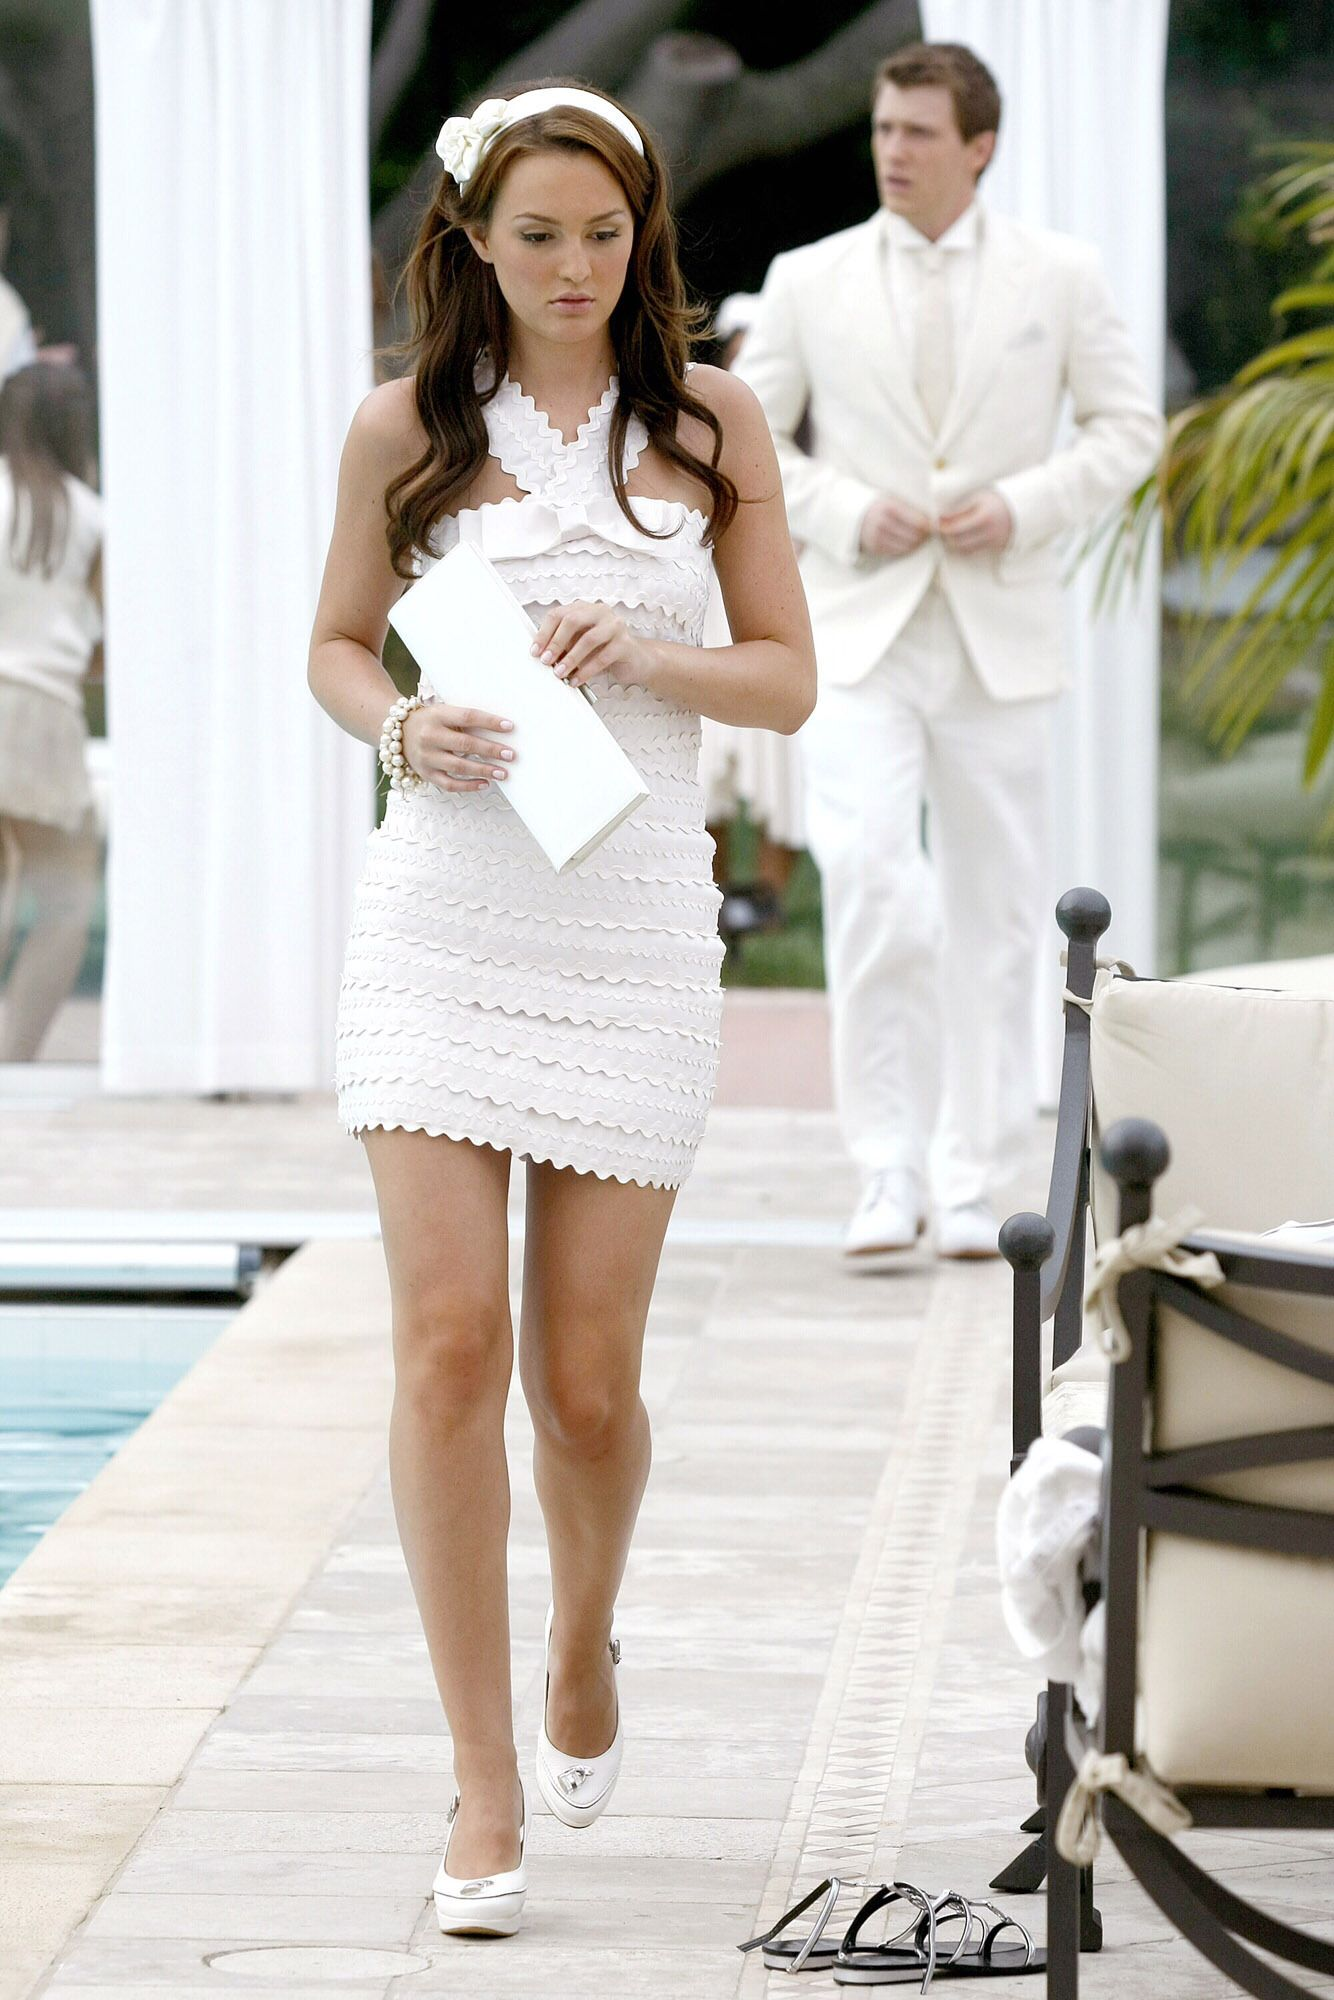 Gossip Girl\'s version of the White Party, Blair Waldorf White Hot in ...